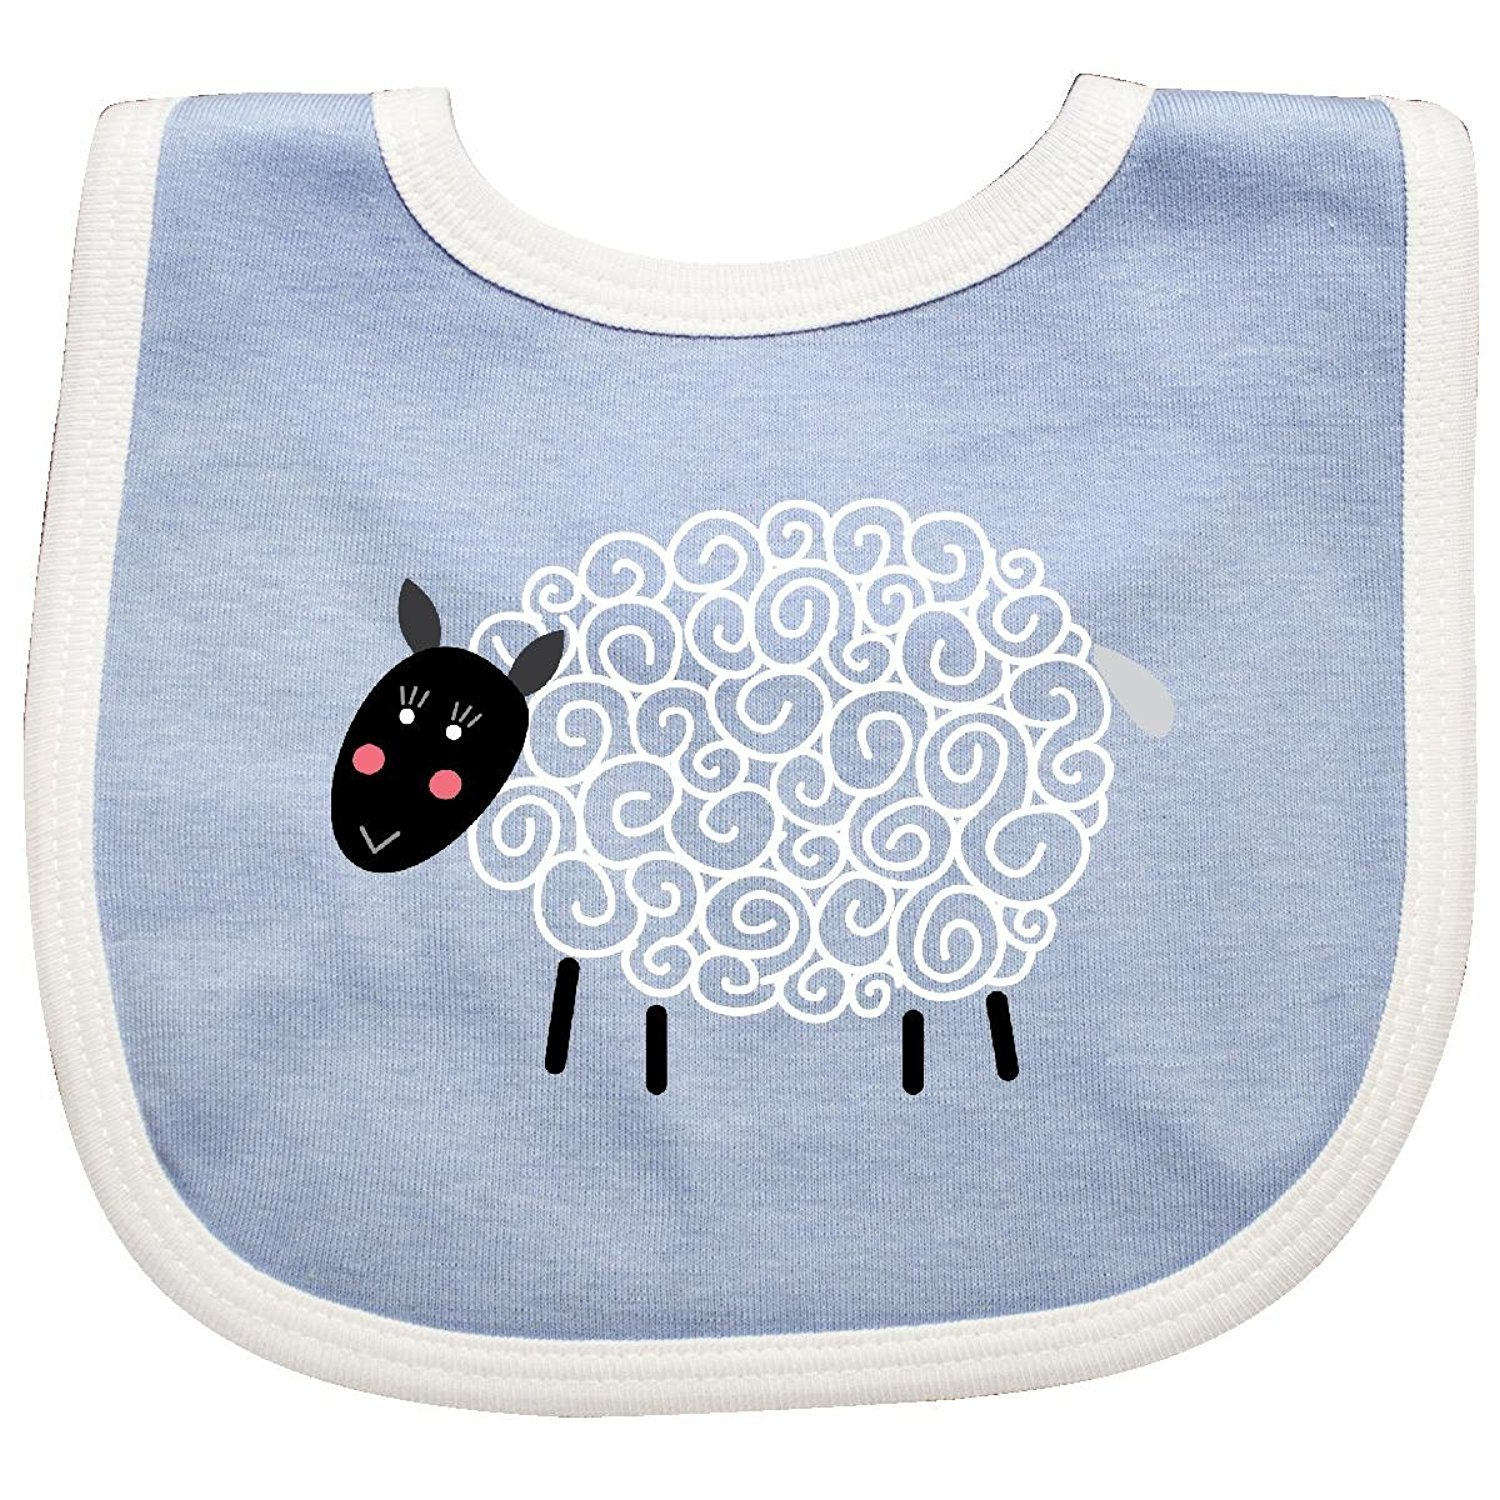 Sheep Curly Wool Lamb Cute Baby Bib Cecil Beard rizhaobaifakang